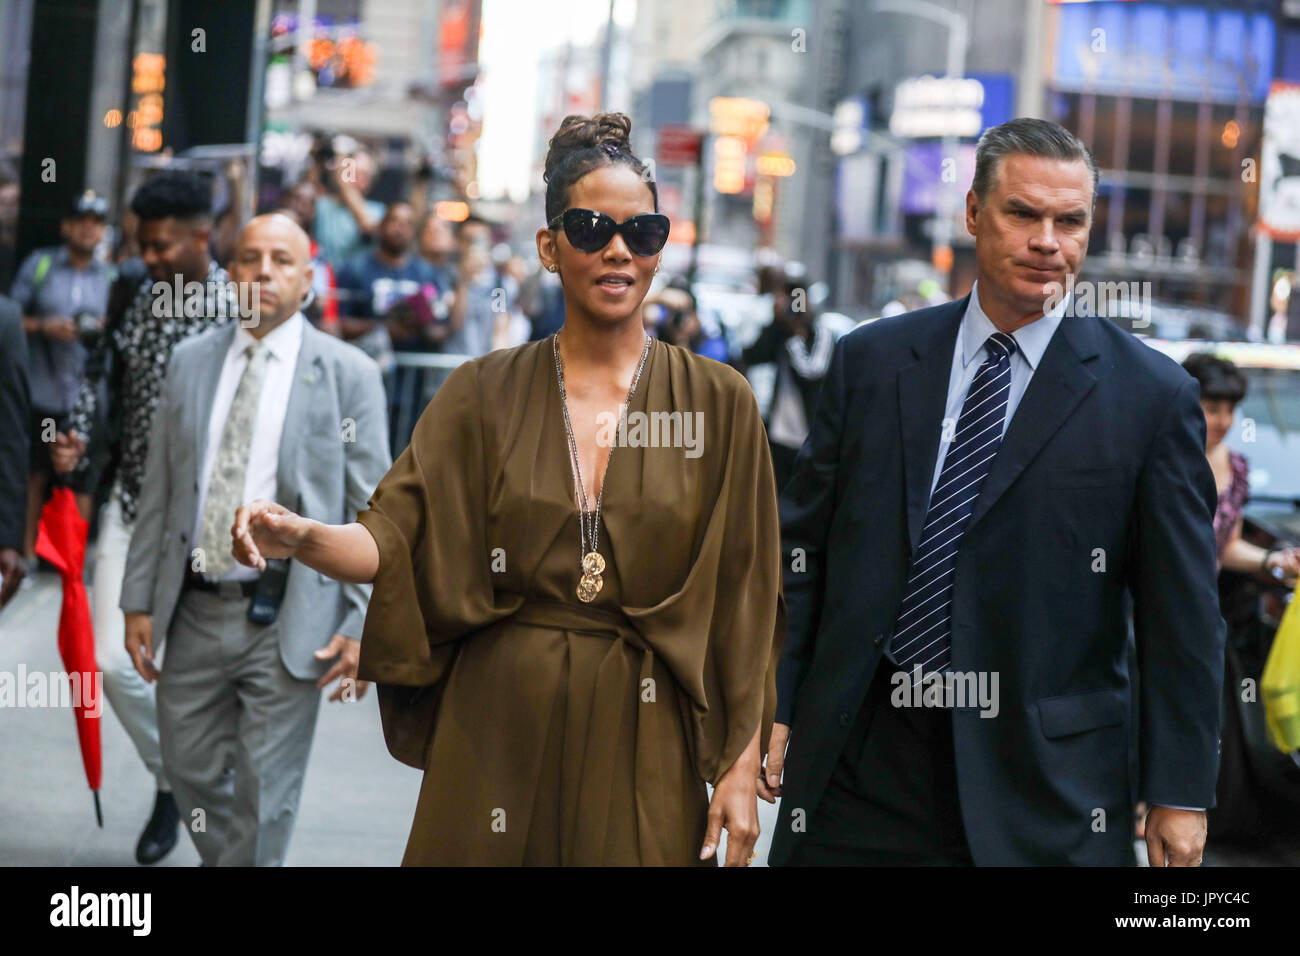 New York, USA. 3rd Aug, 2017. American actress Halle Berry is seen arriving on a television program in the Times Stock Photo